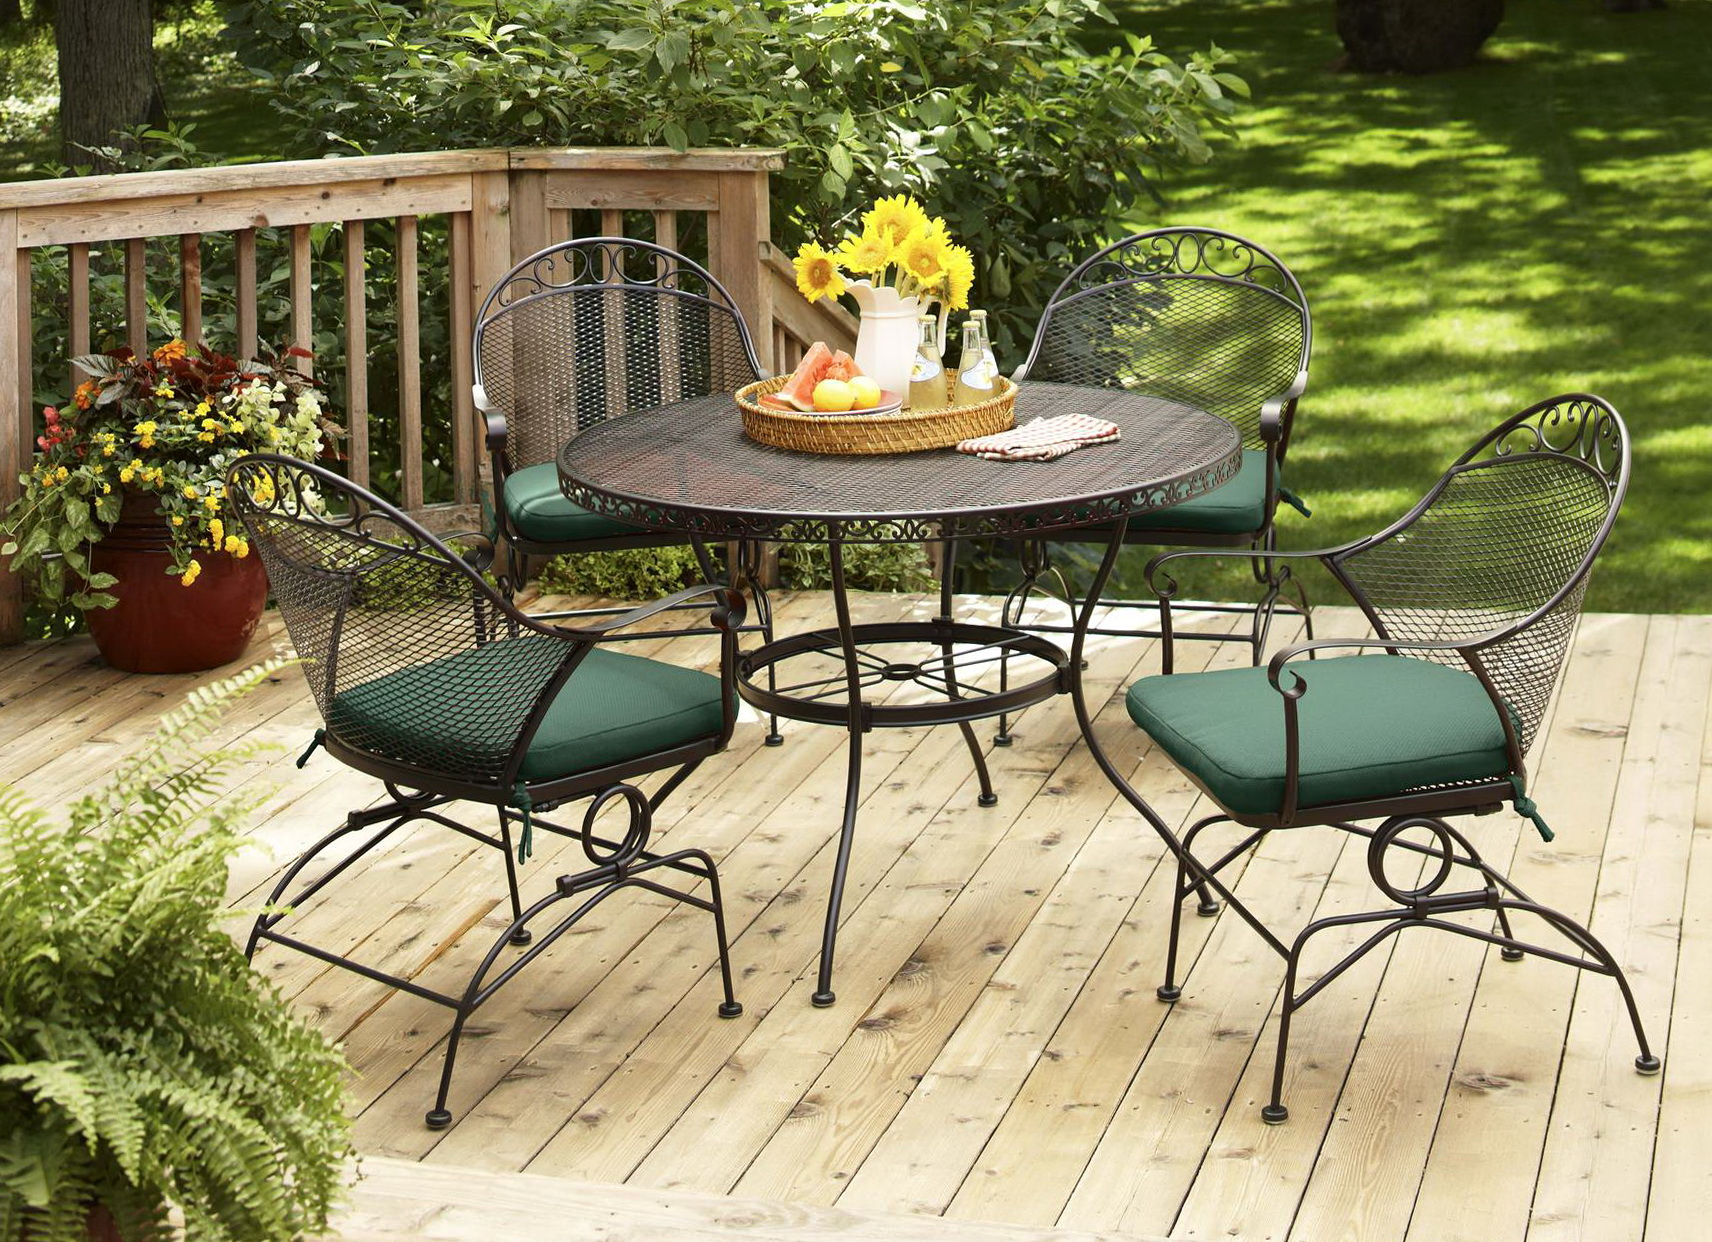 Better homes and gardens cushions for patio furniture Better homes and gardens patio furniture